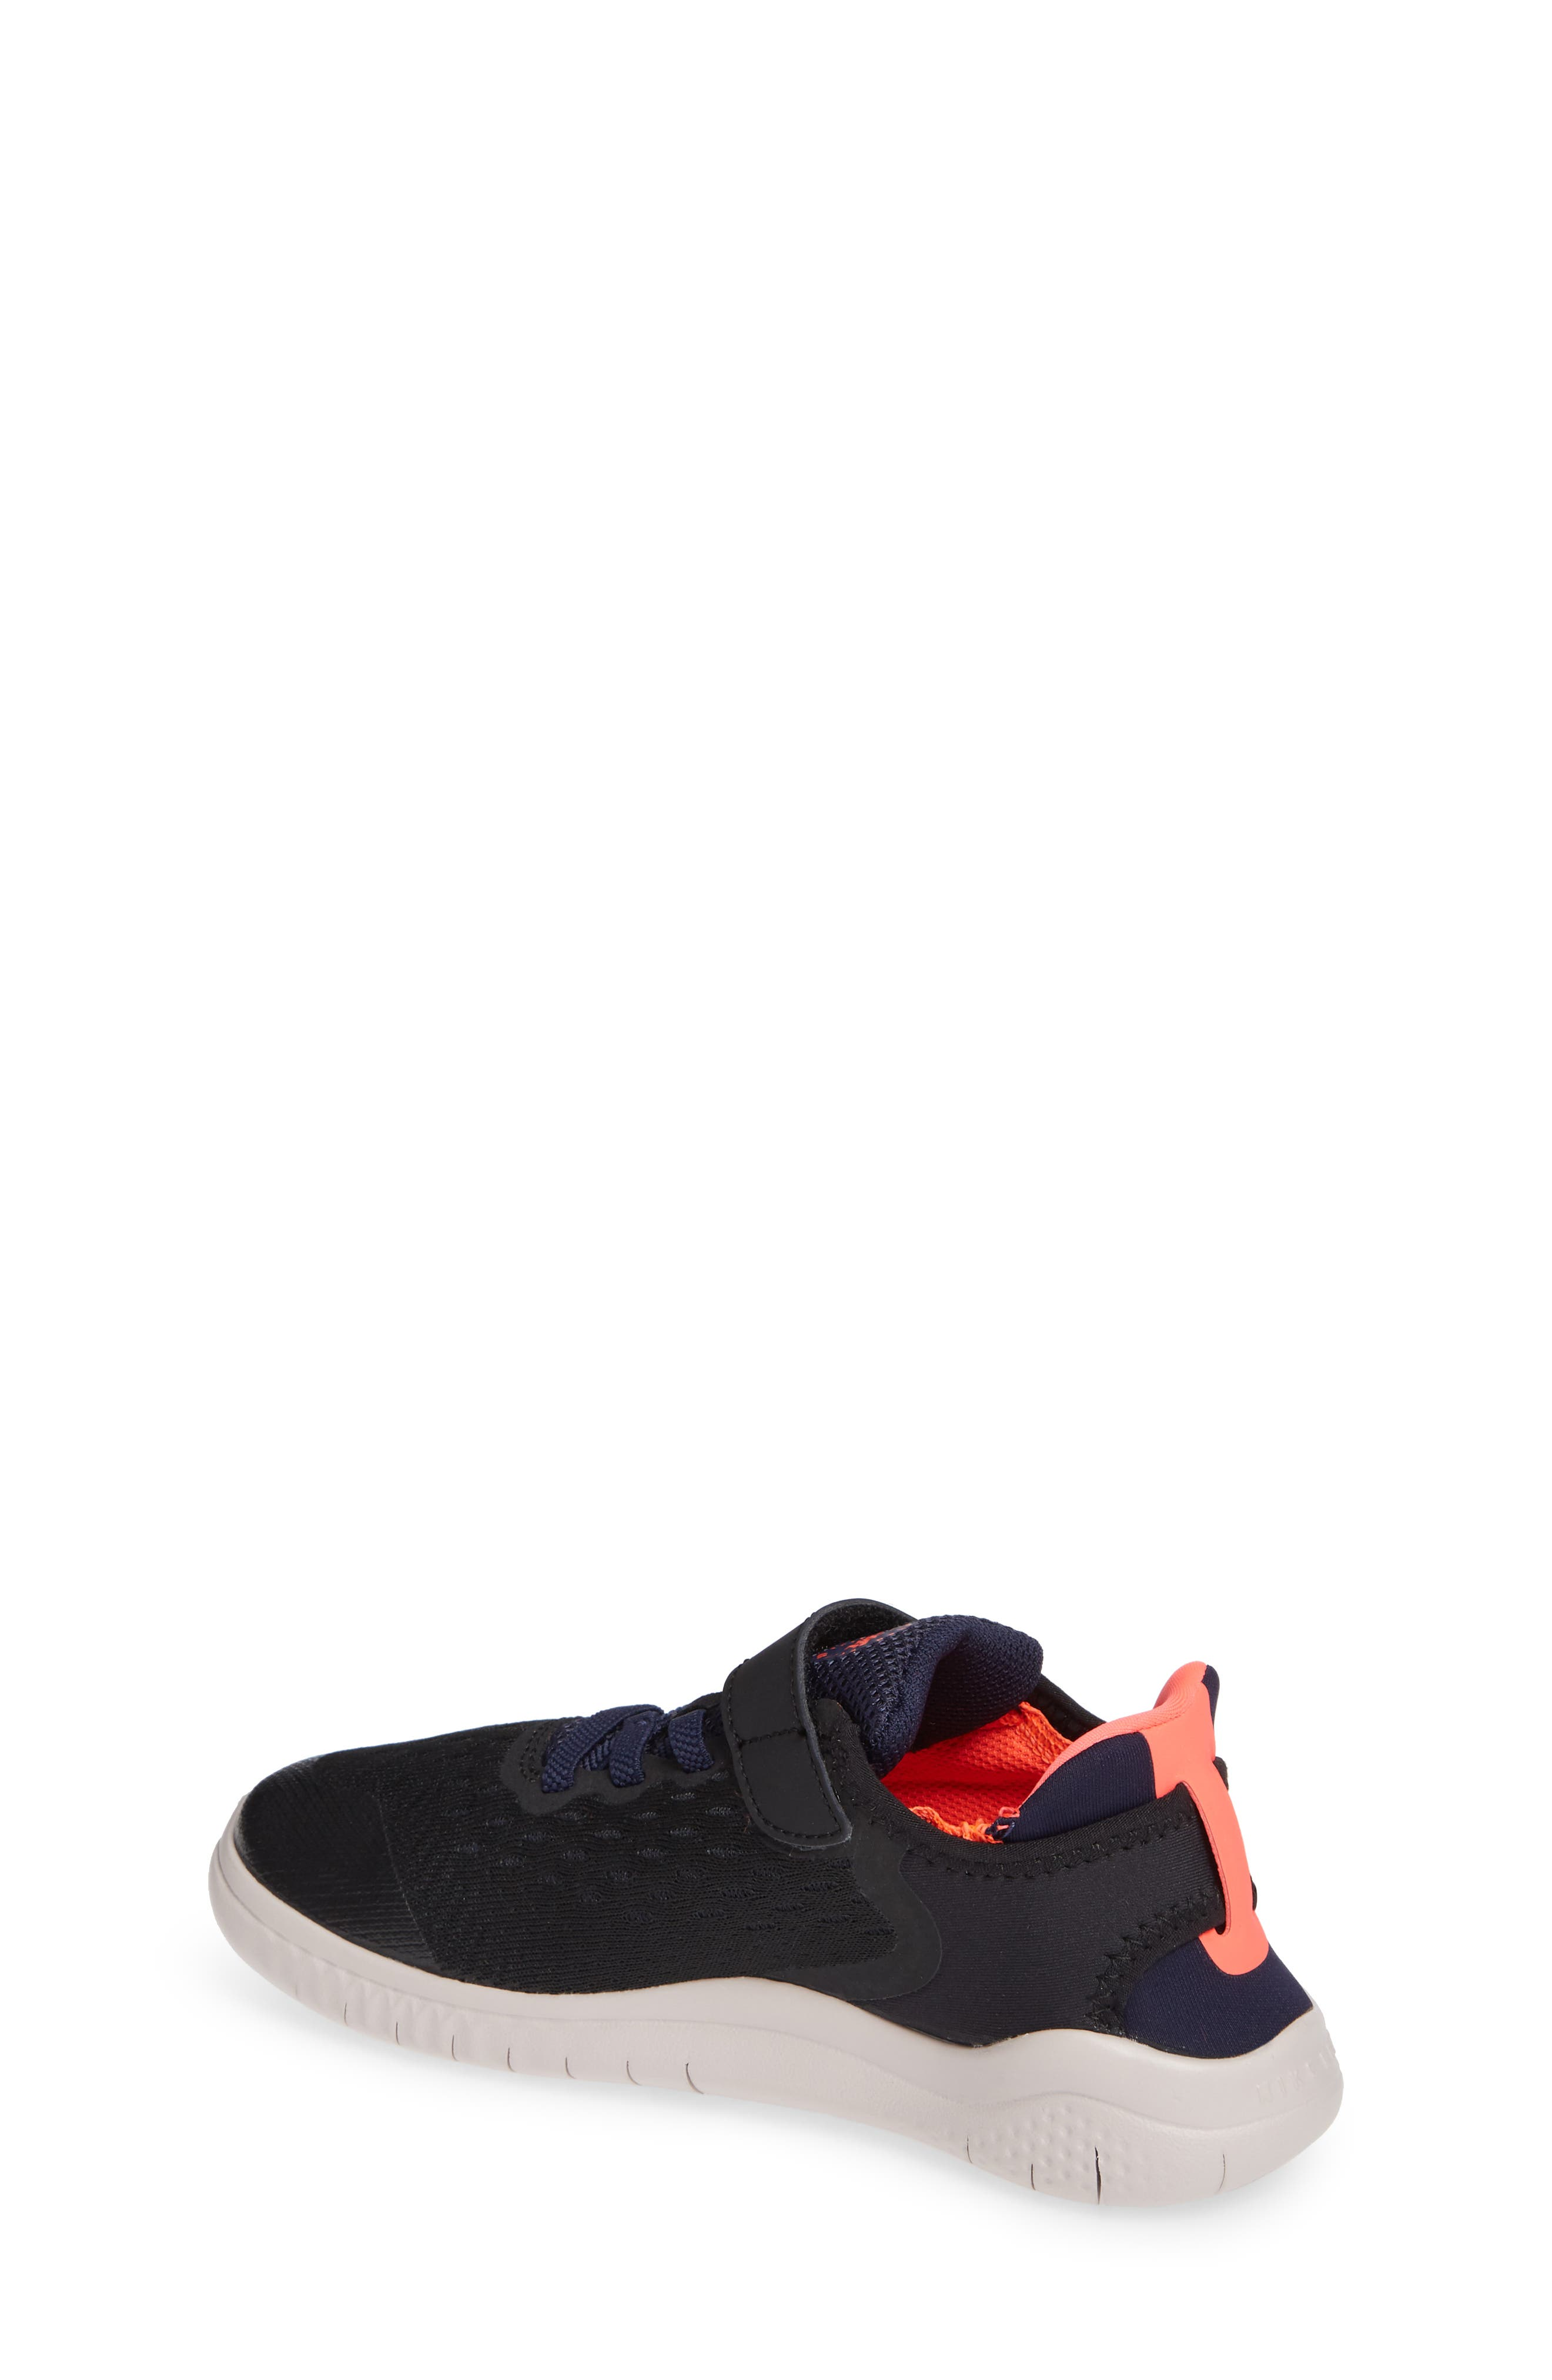 Free RN Running Shoe,                             Alternate thumbnail 2, color,                             BLACK MOON PARTICLE